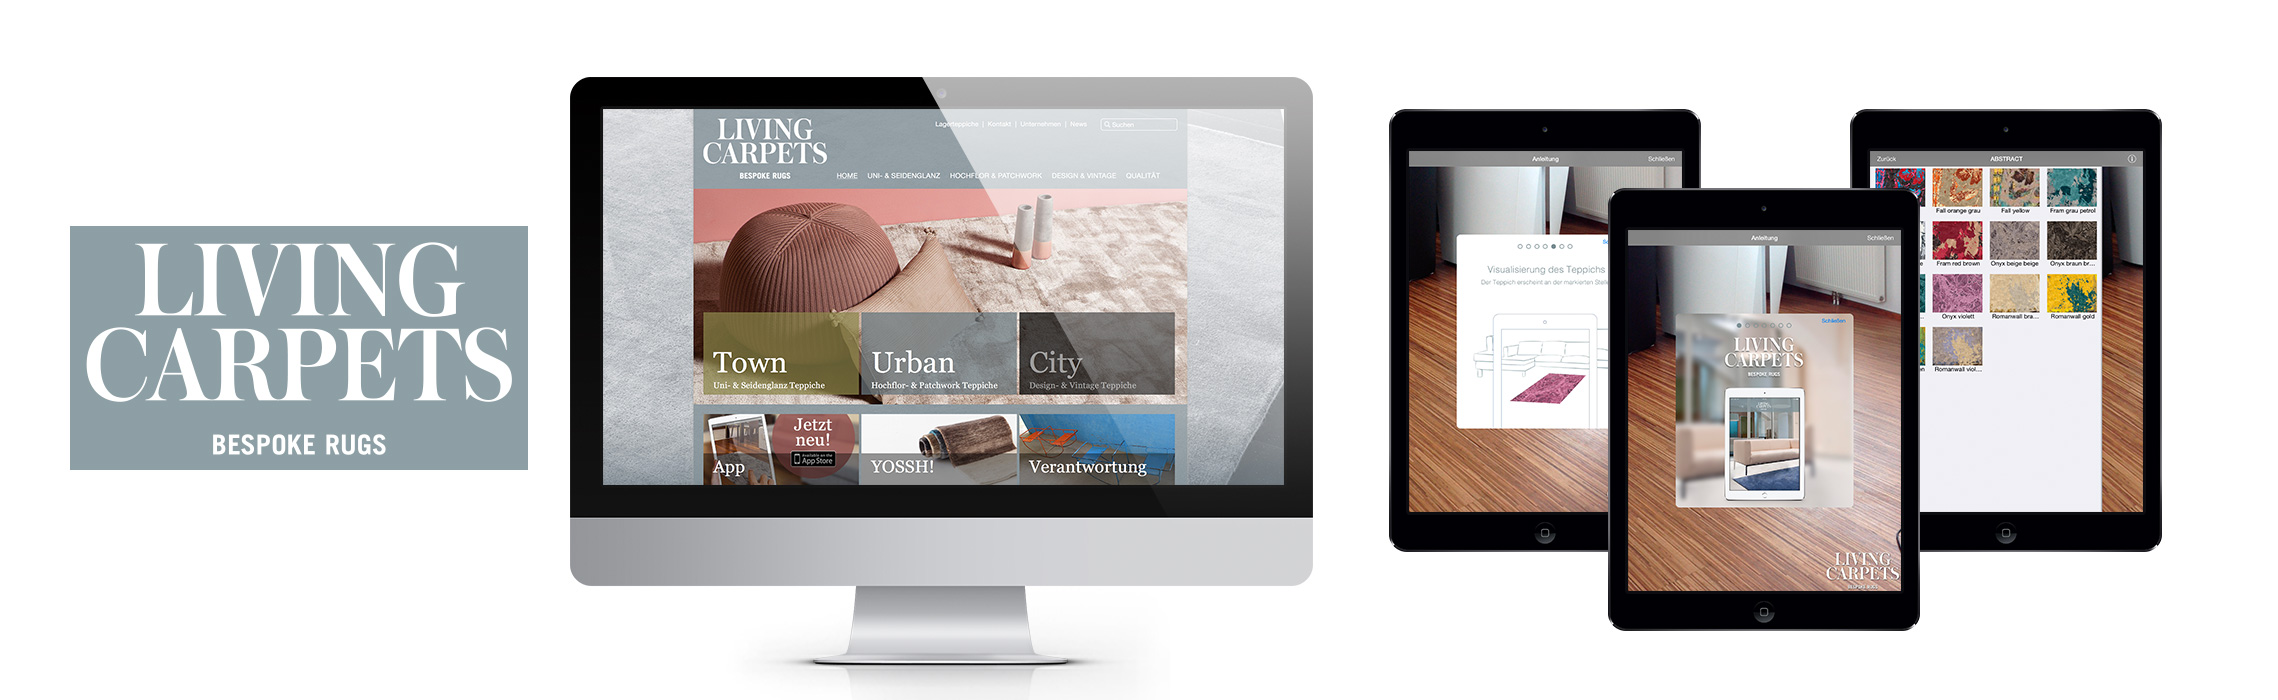 Referenz Webdesign Living Carpets